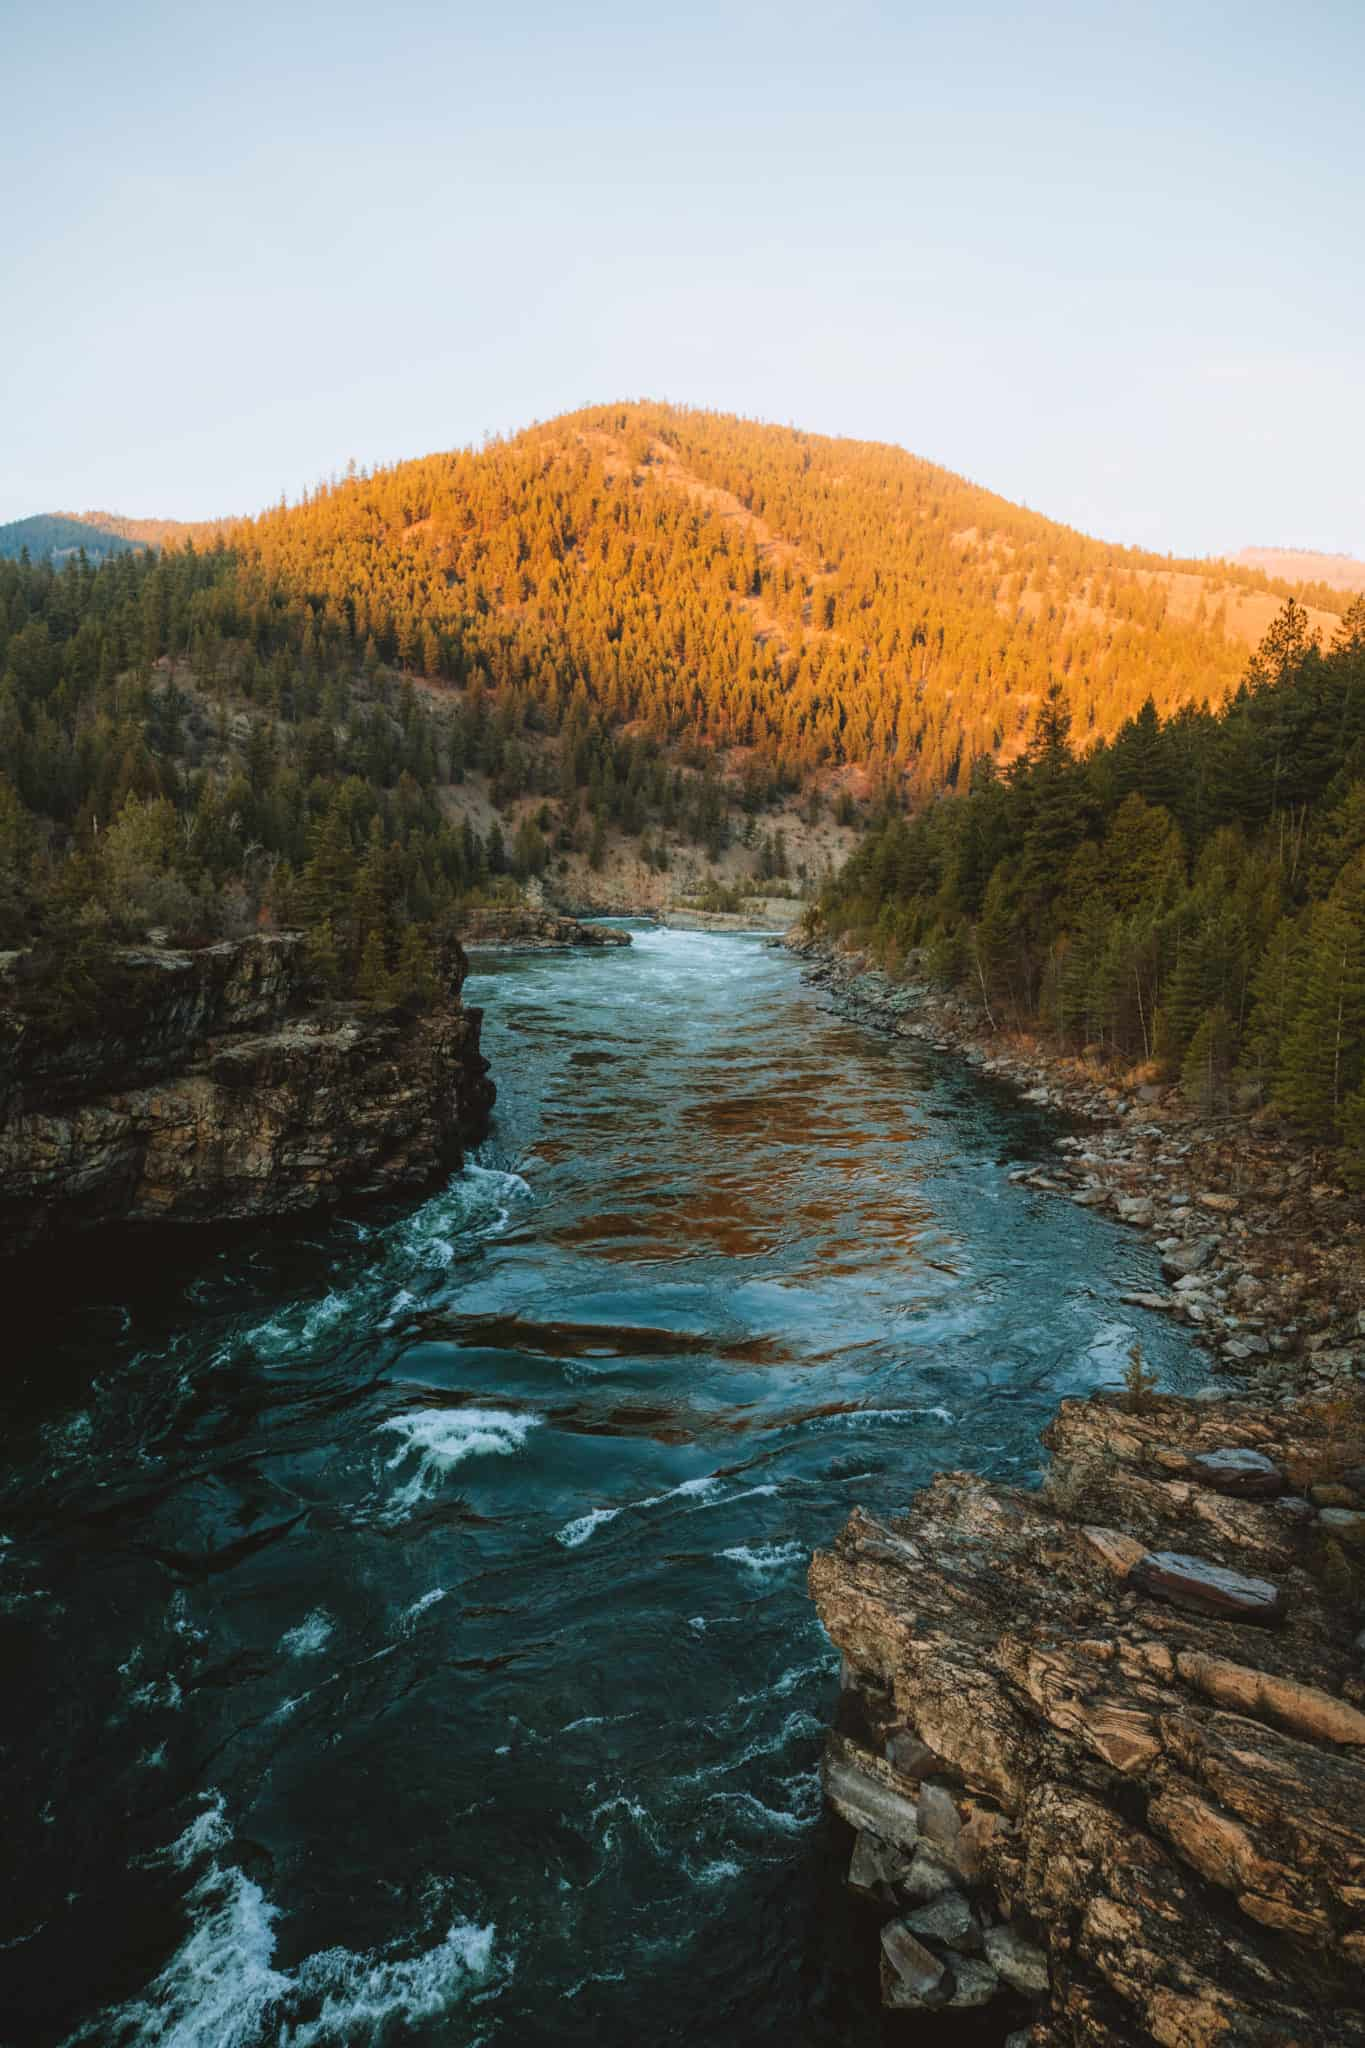 View of Kootenai River From Swinging Bridge - TheMandagies.com